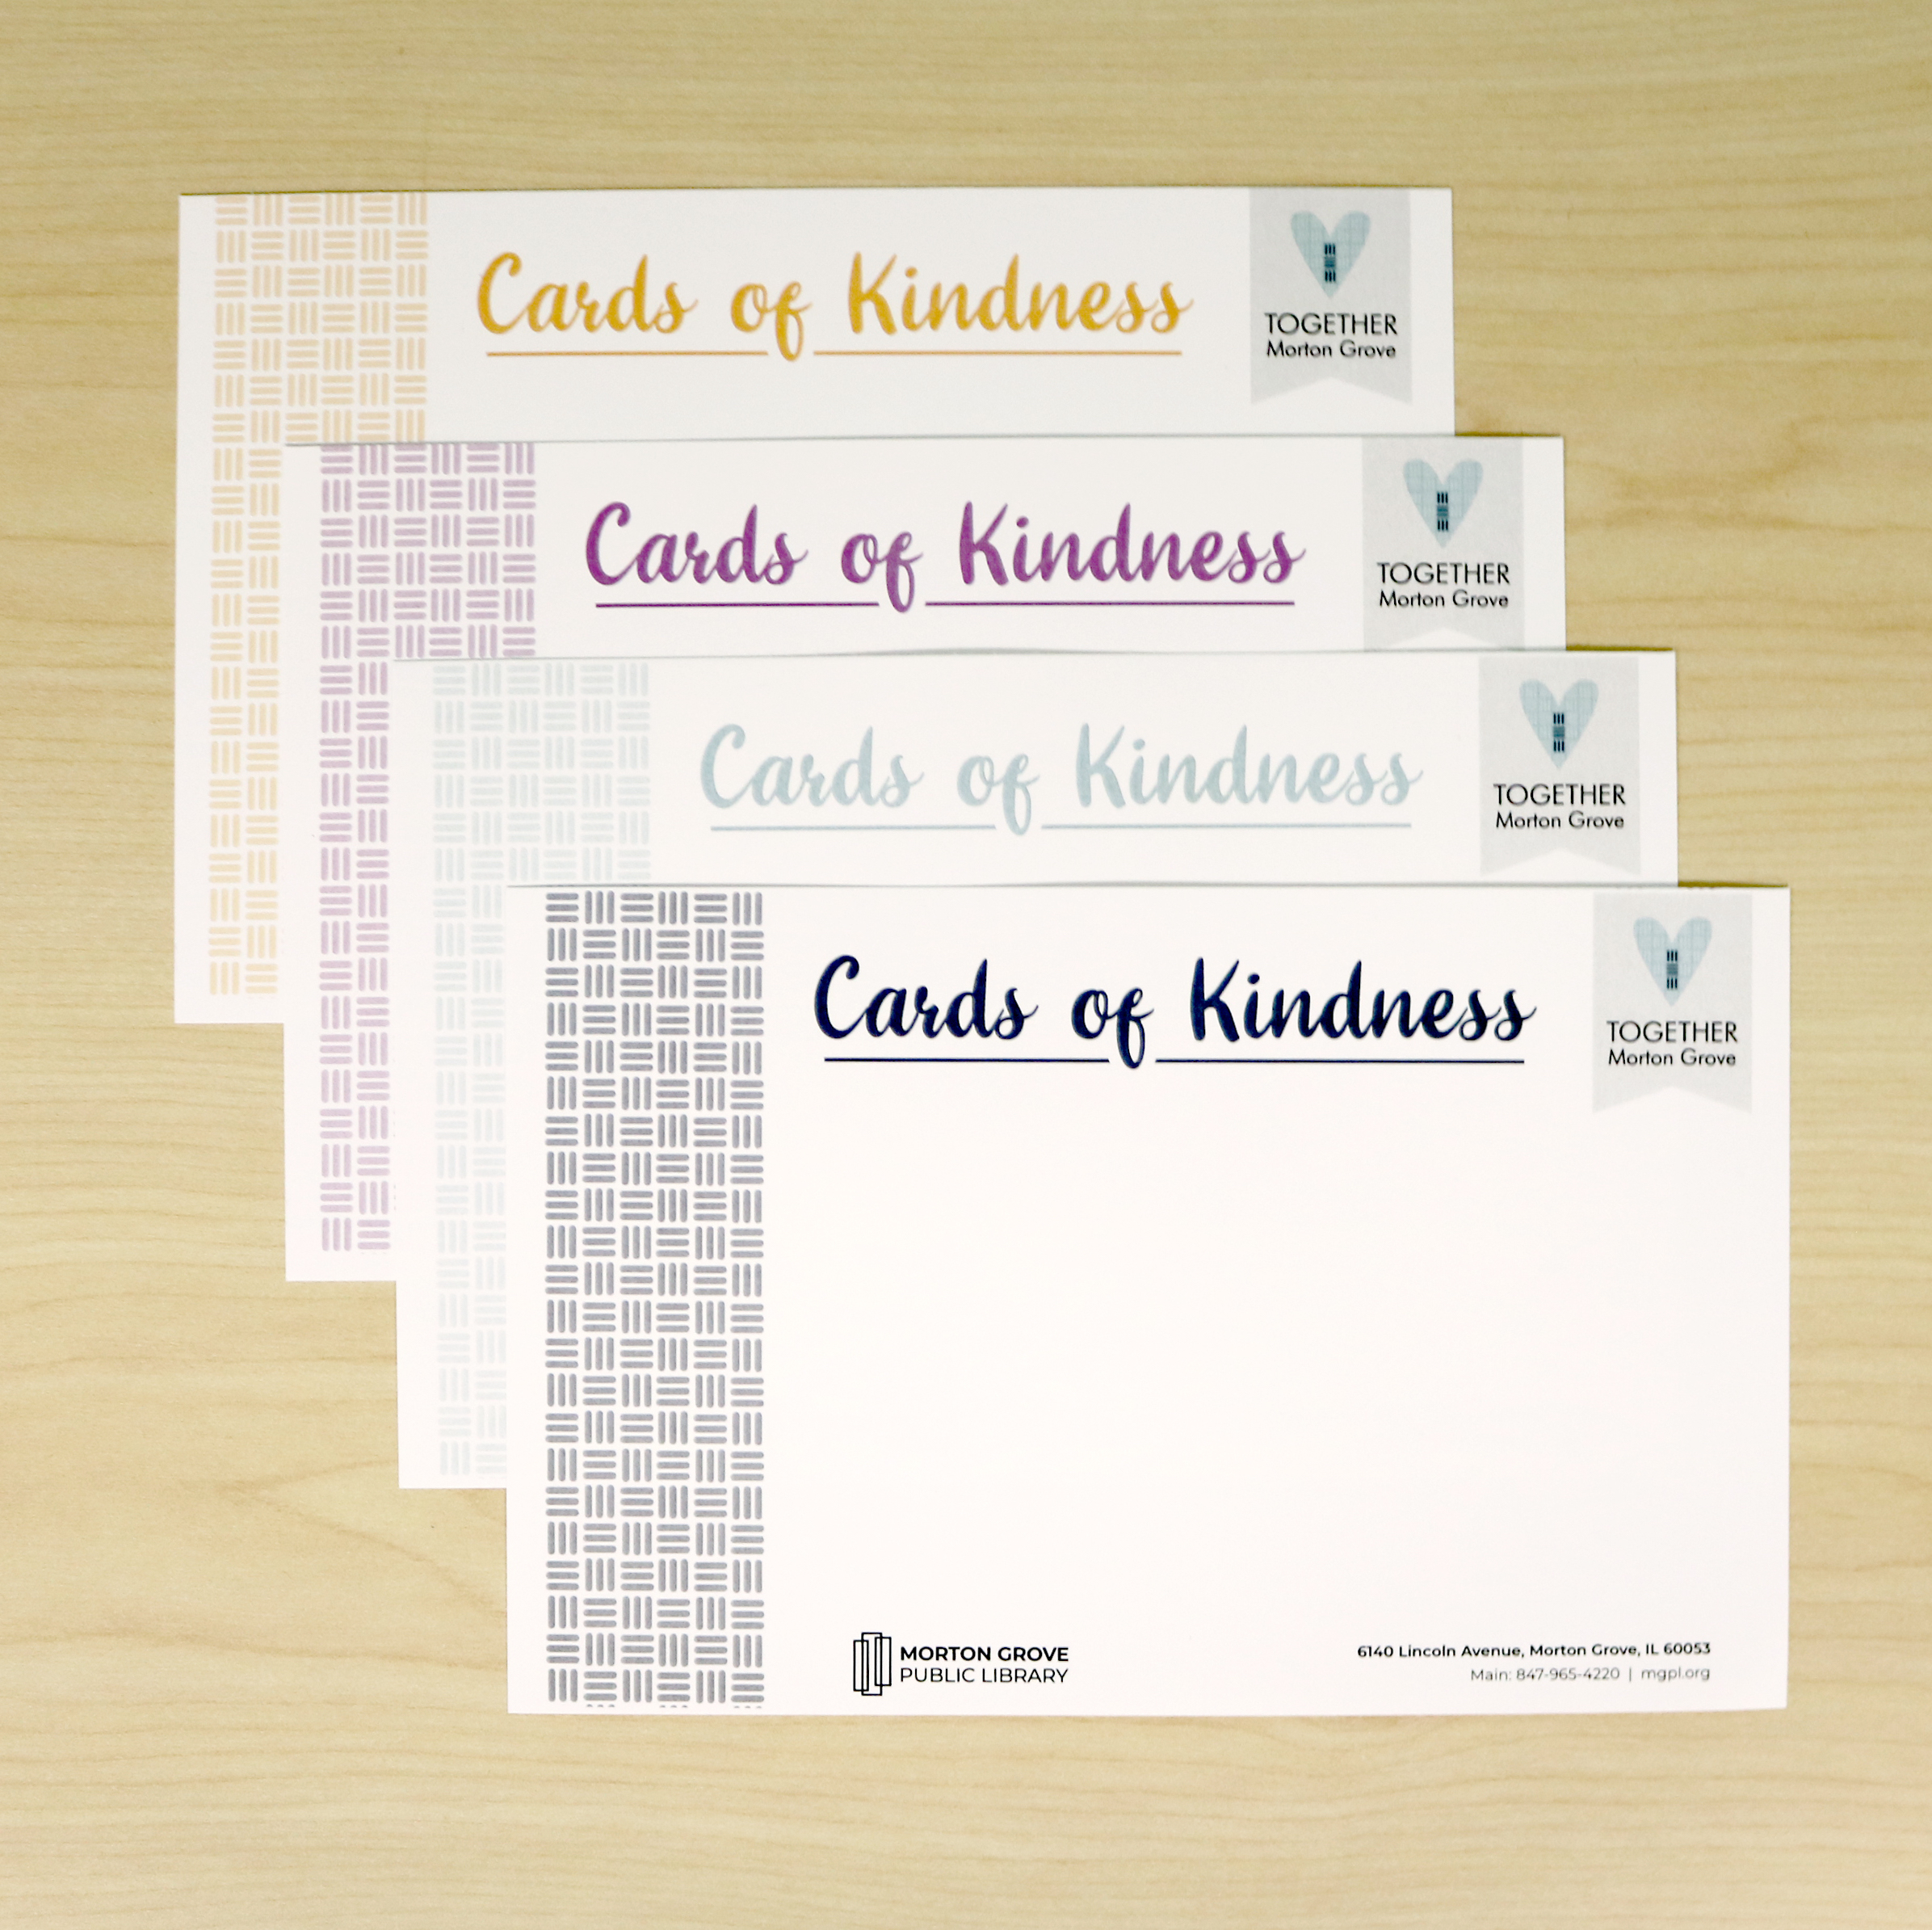 cards of kindness